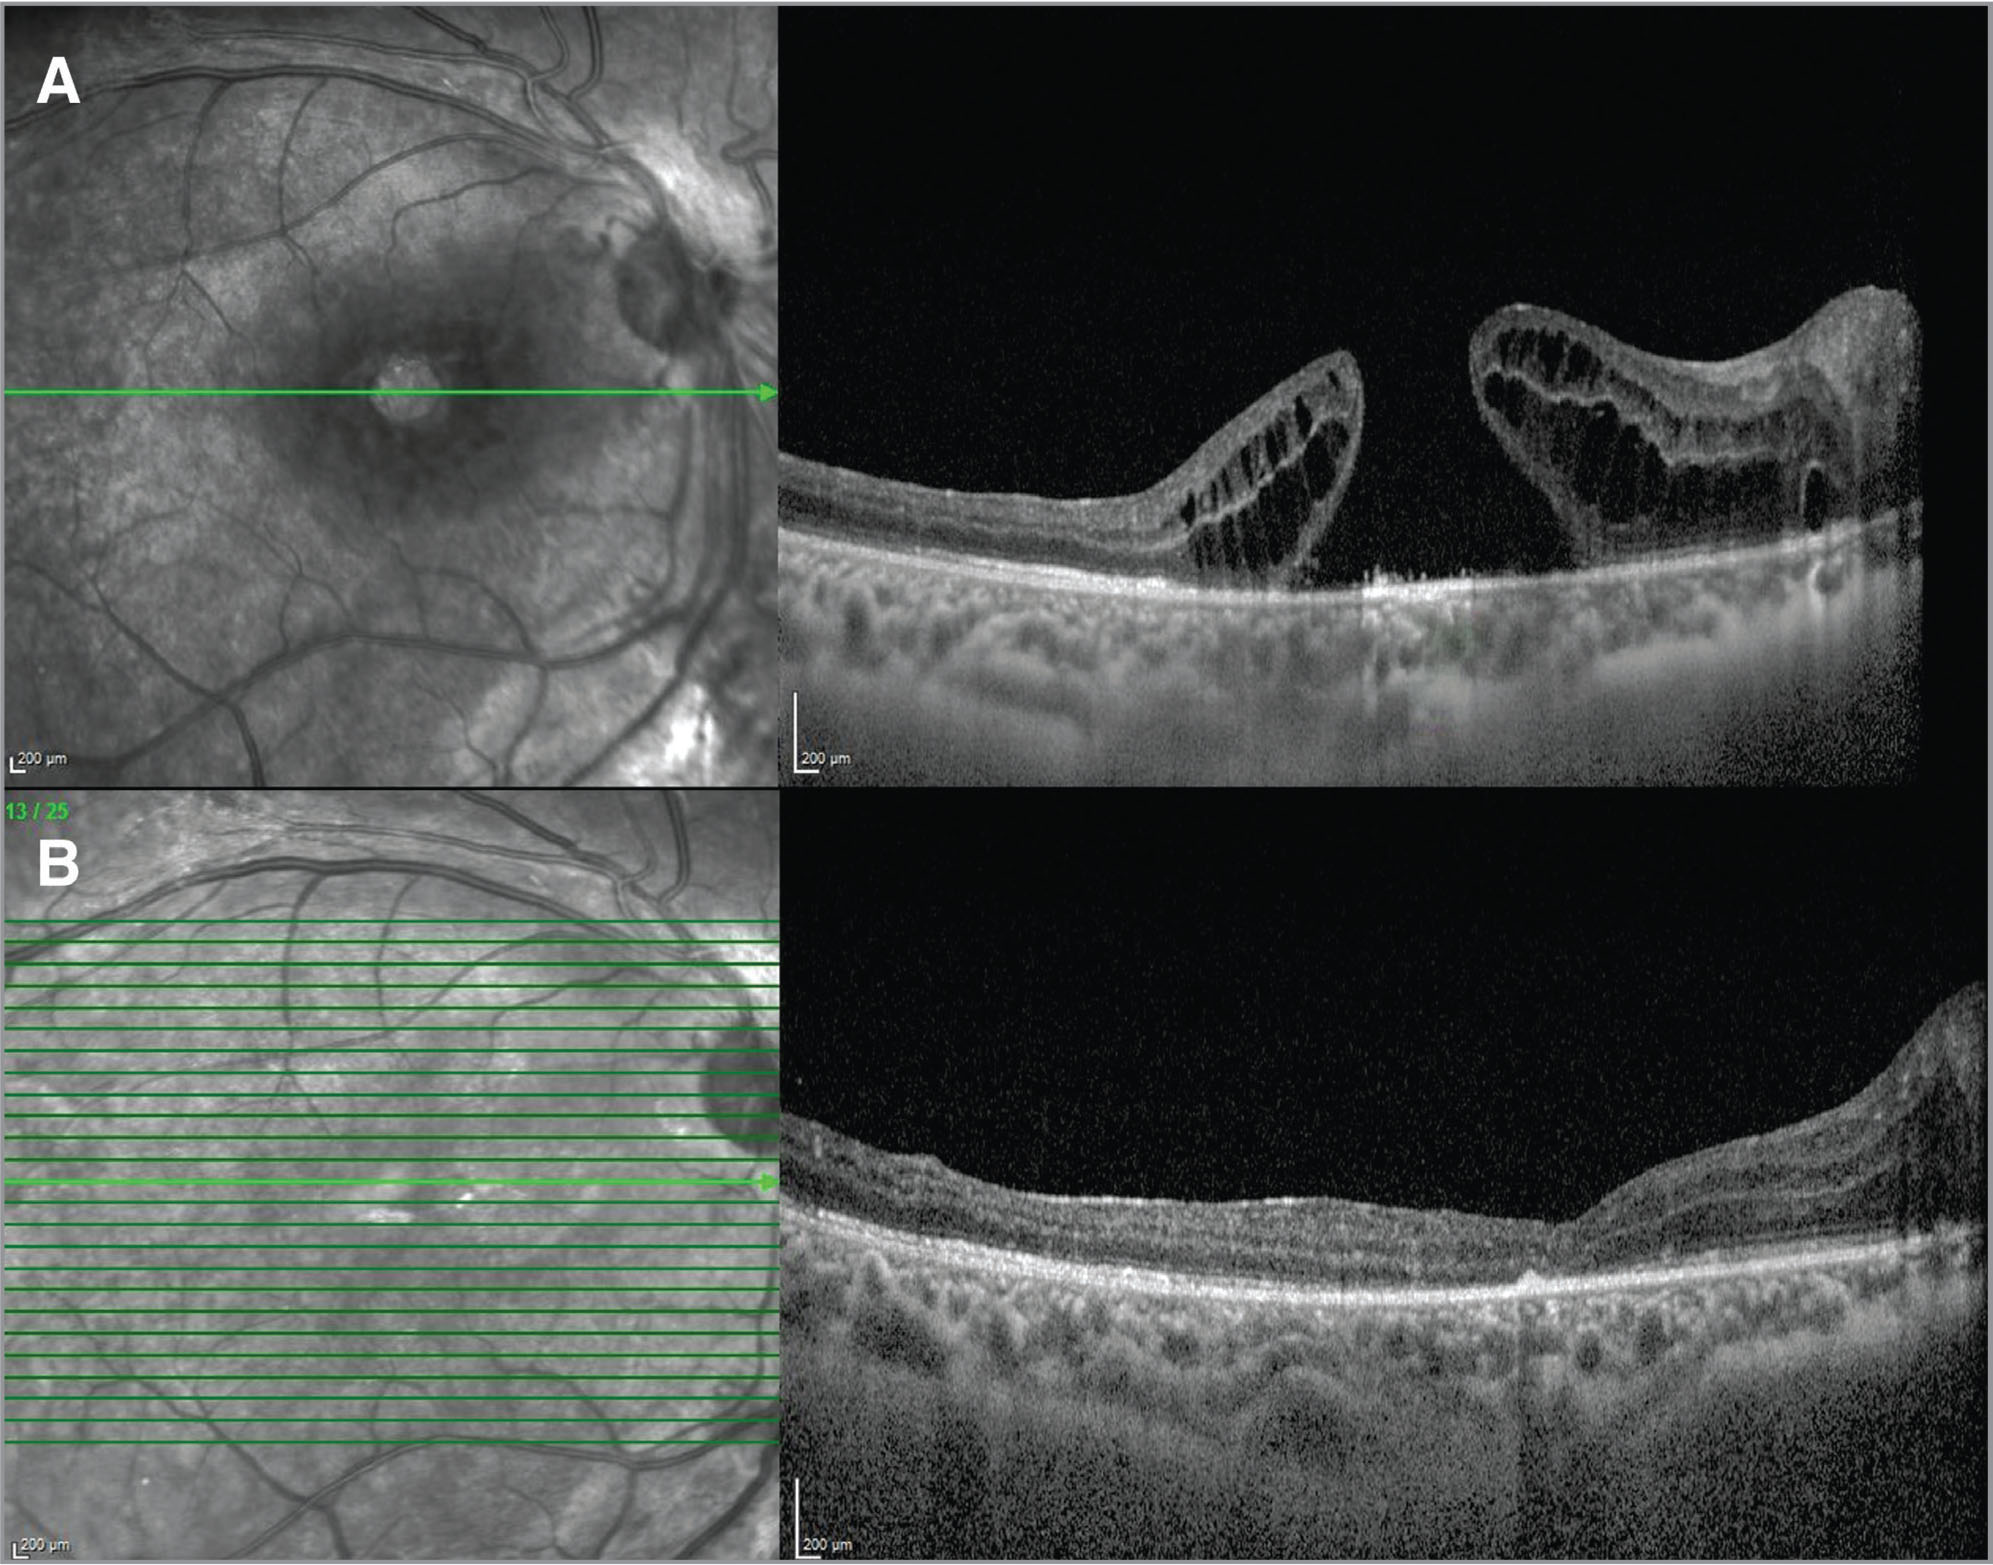 (A) Preoperative optical coherence tomography sections of the 19-year-old patient. Preoperative hole base diameter was 2,200 μm. (B) At postoperative month 6, the hole remained closed. Preoperative best spectacle-corrected visual acuity (BSCVA) was less than 20/200. BSCVA at 6 months postoperatively was 20/200.